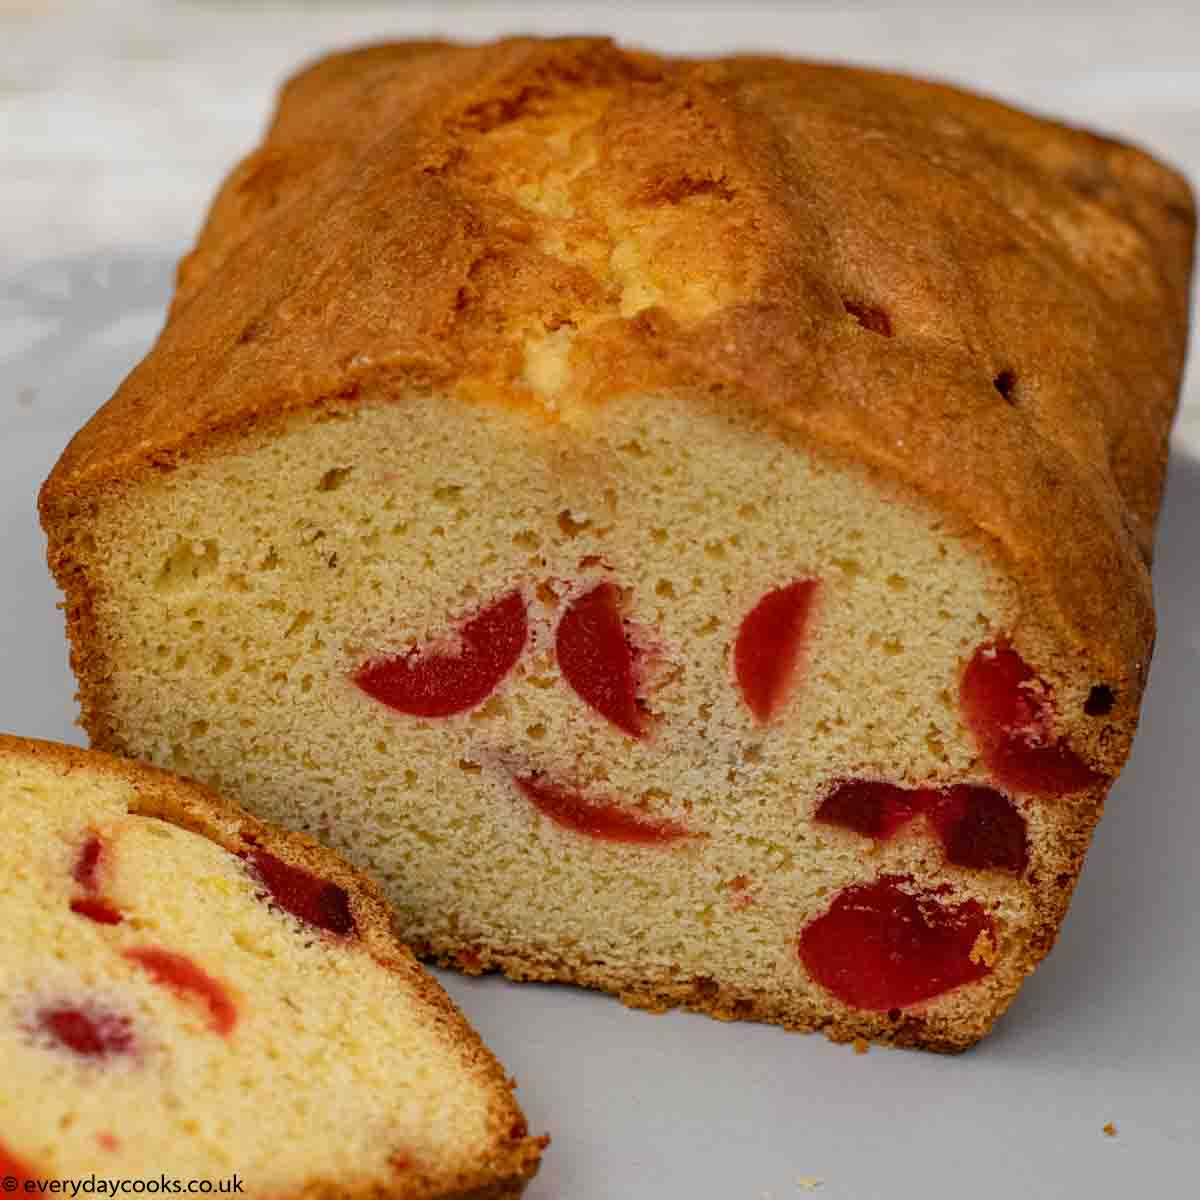 Cherry Cake on a grey plate with part of a slice of cake to the left